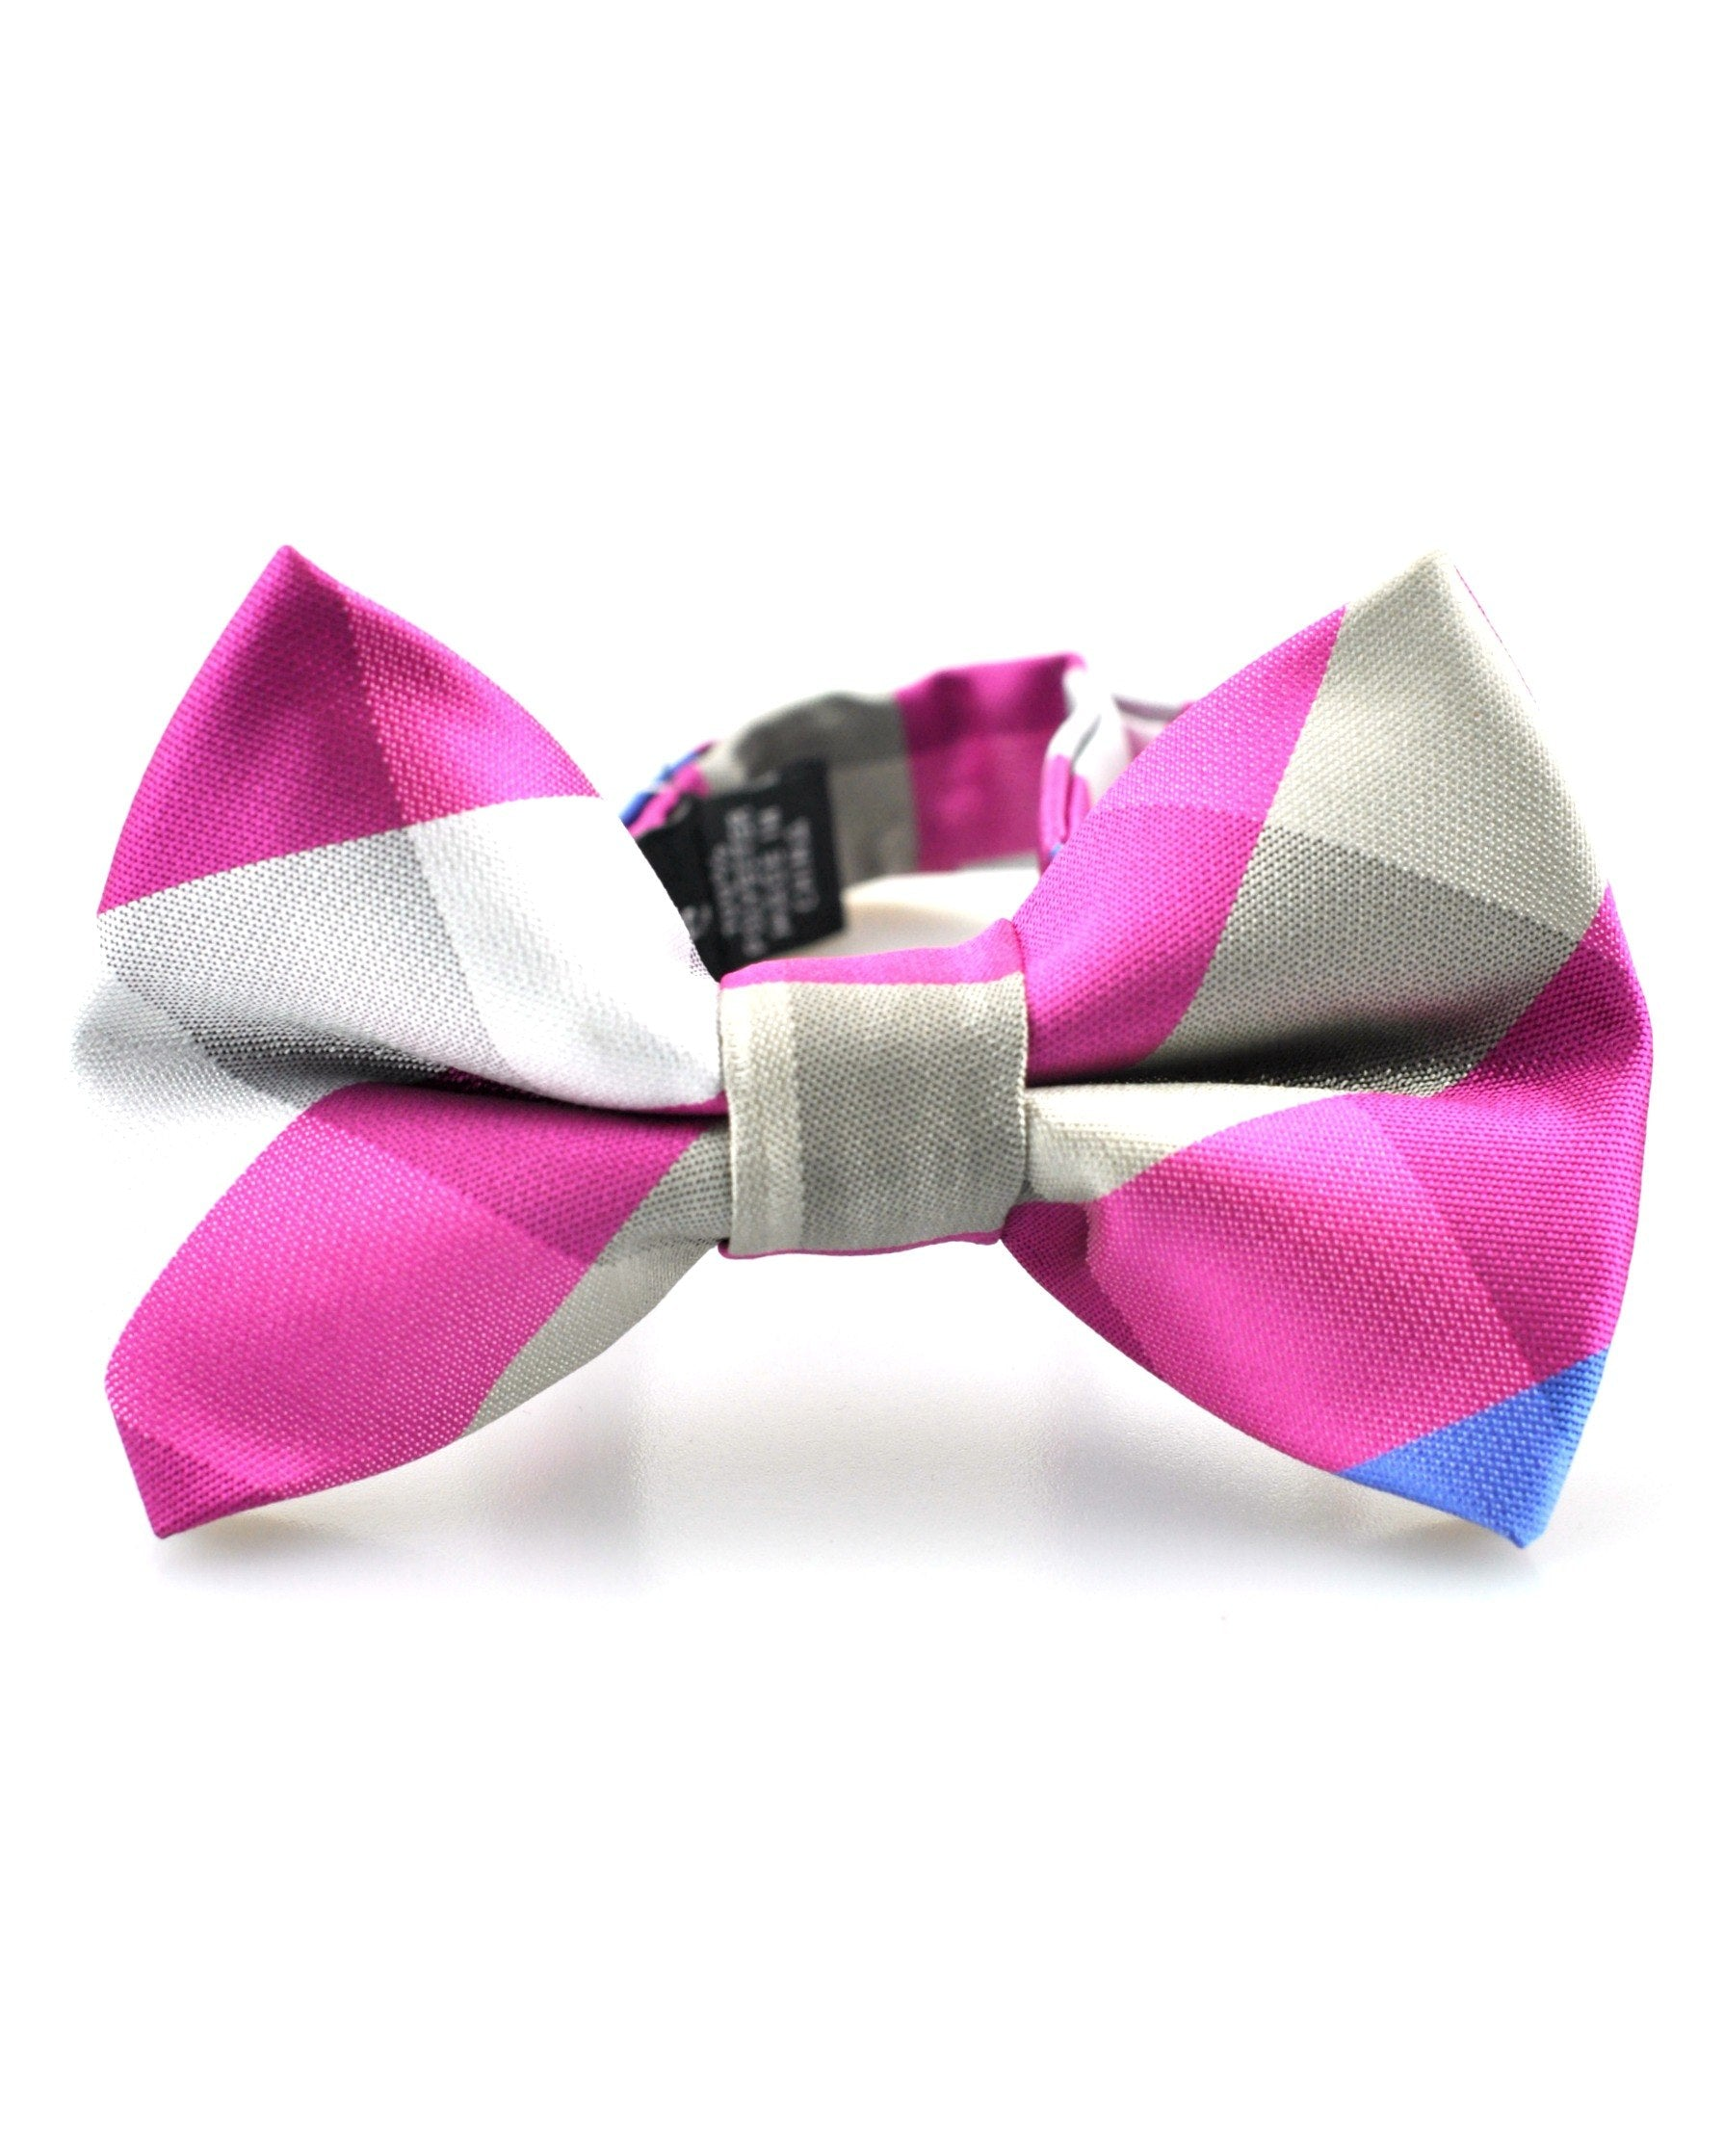 magenta-and-blue-check-bow-tie.jpg